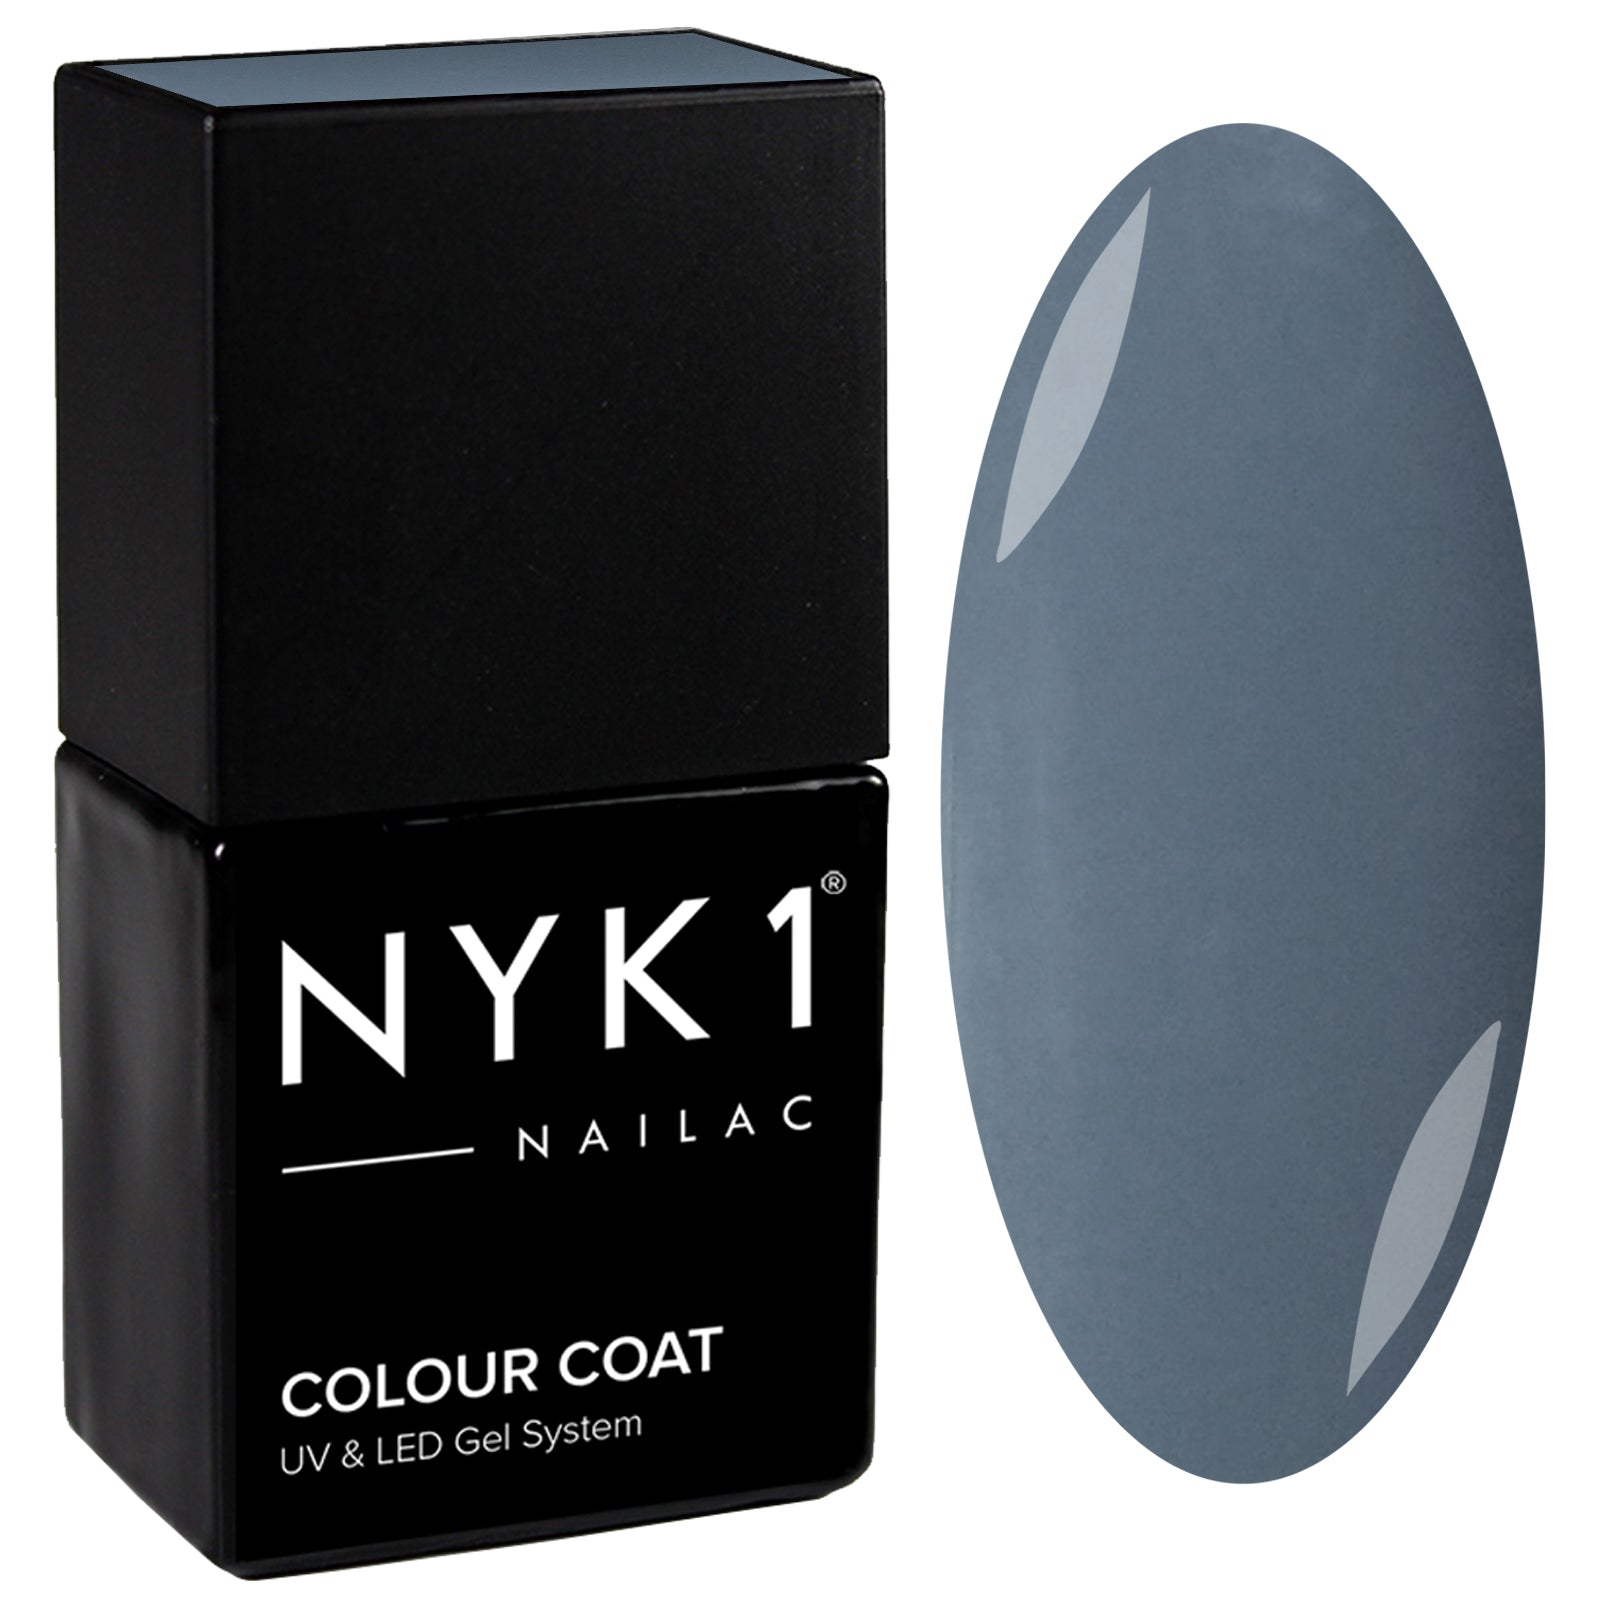 NYK1 Nailac Pebble Grey Blue Stone Gel Nail Polish